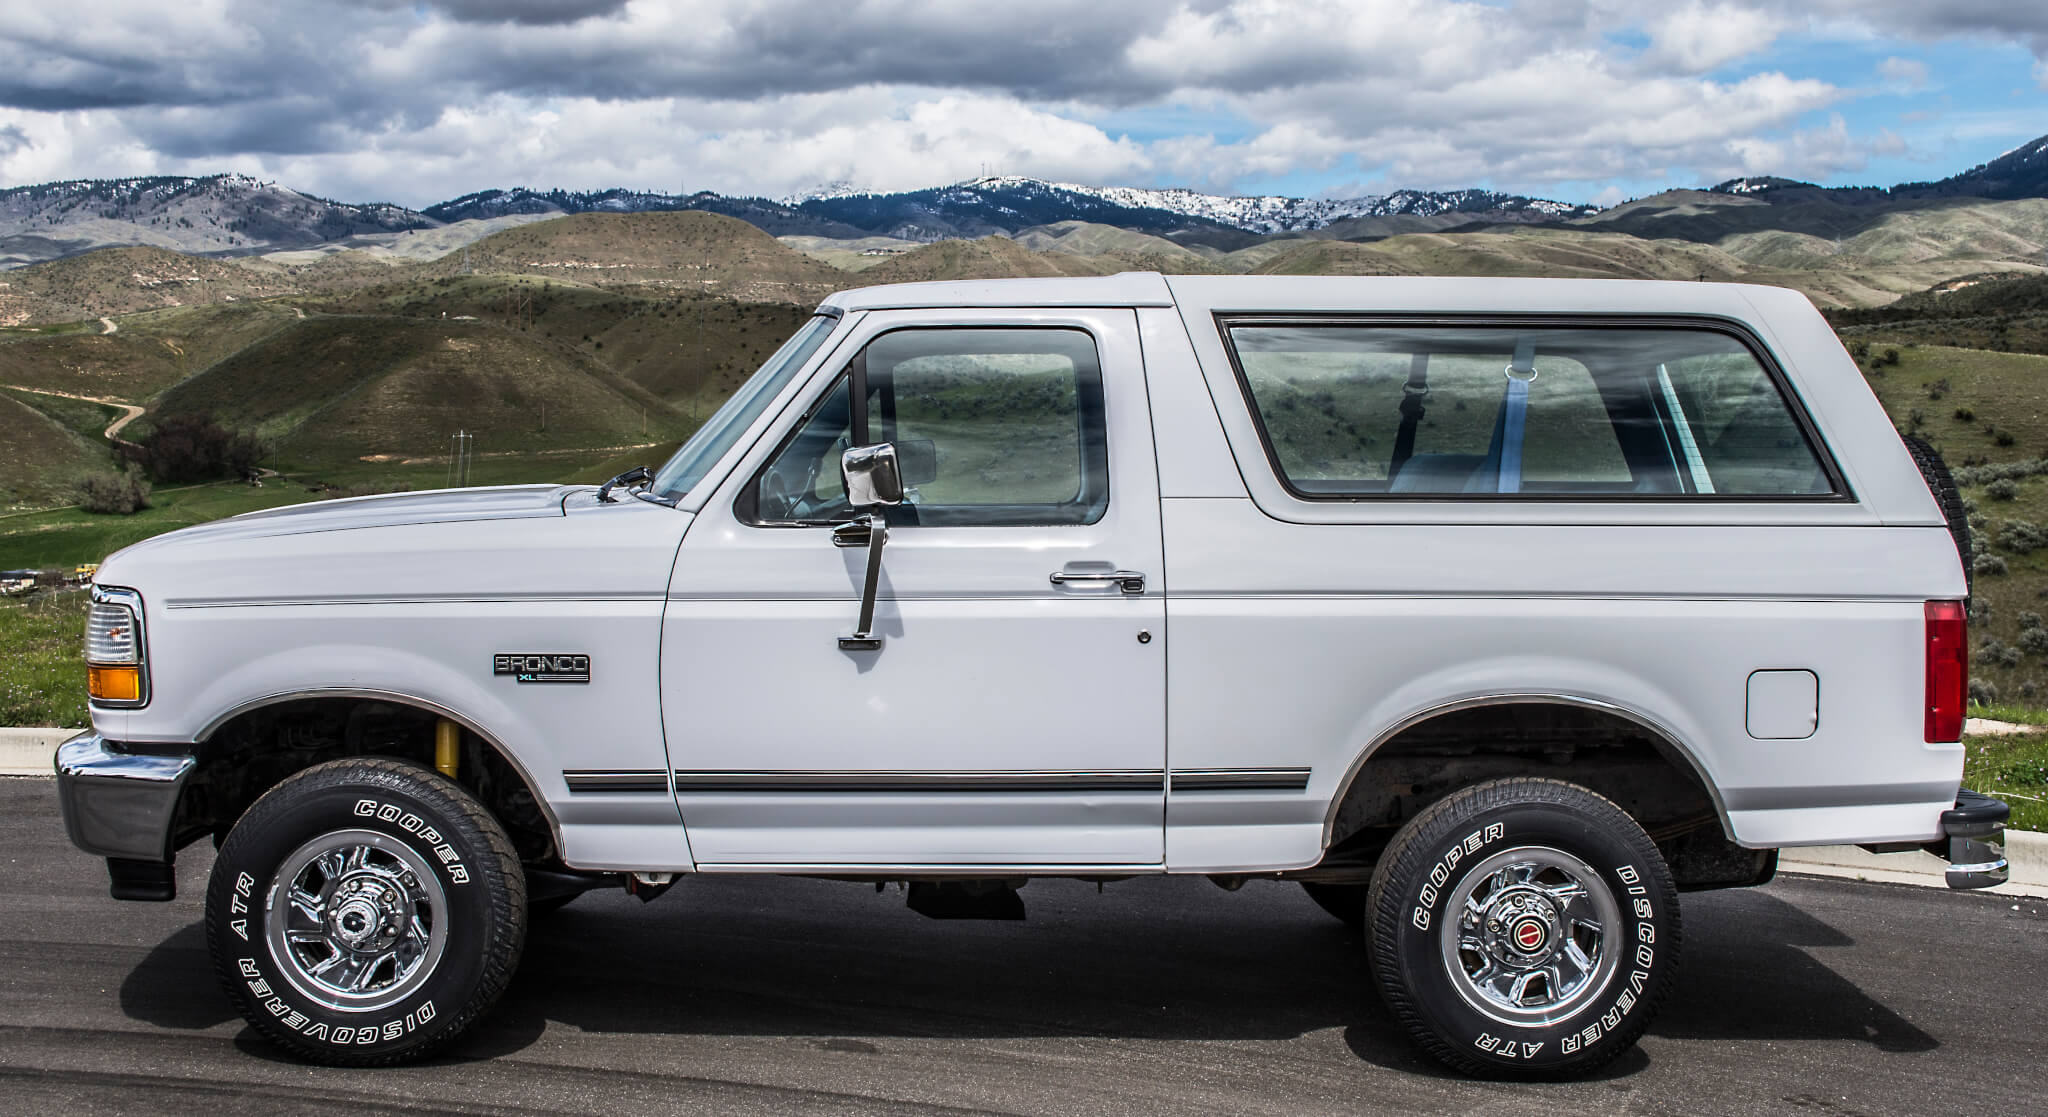 1995 Ford Bronco - Todd C. - LMC Truck Life